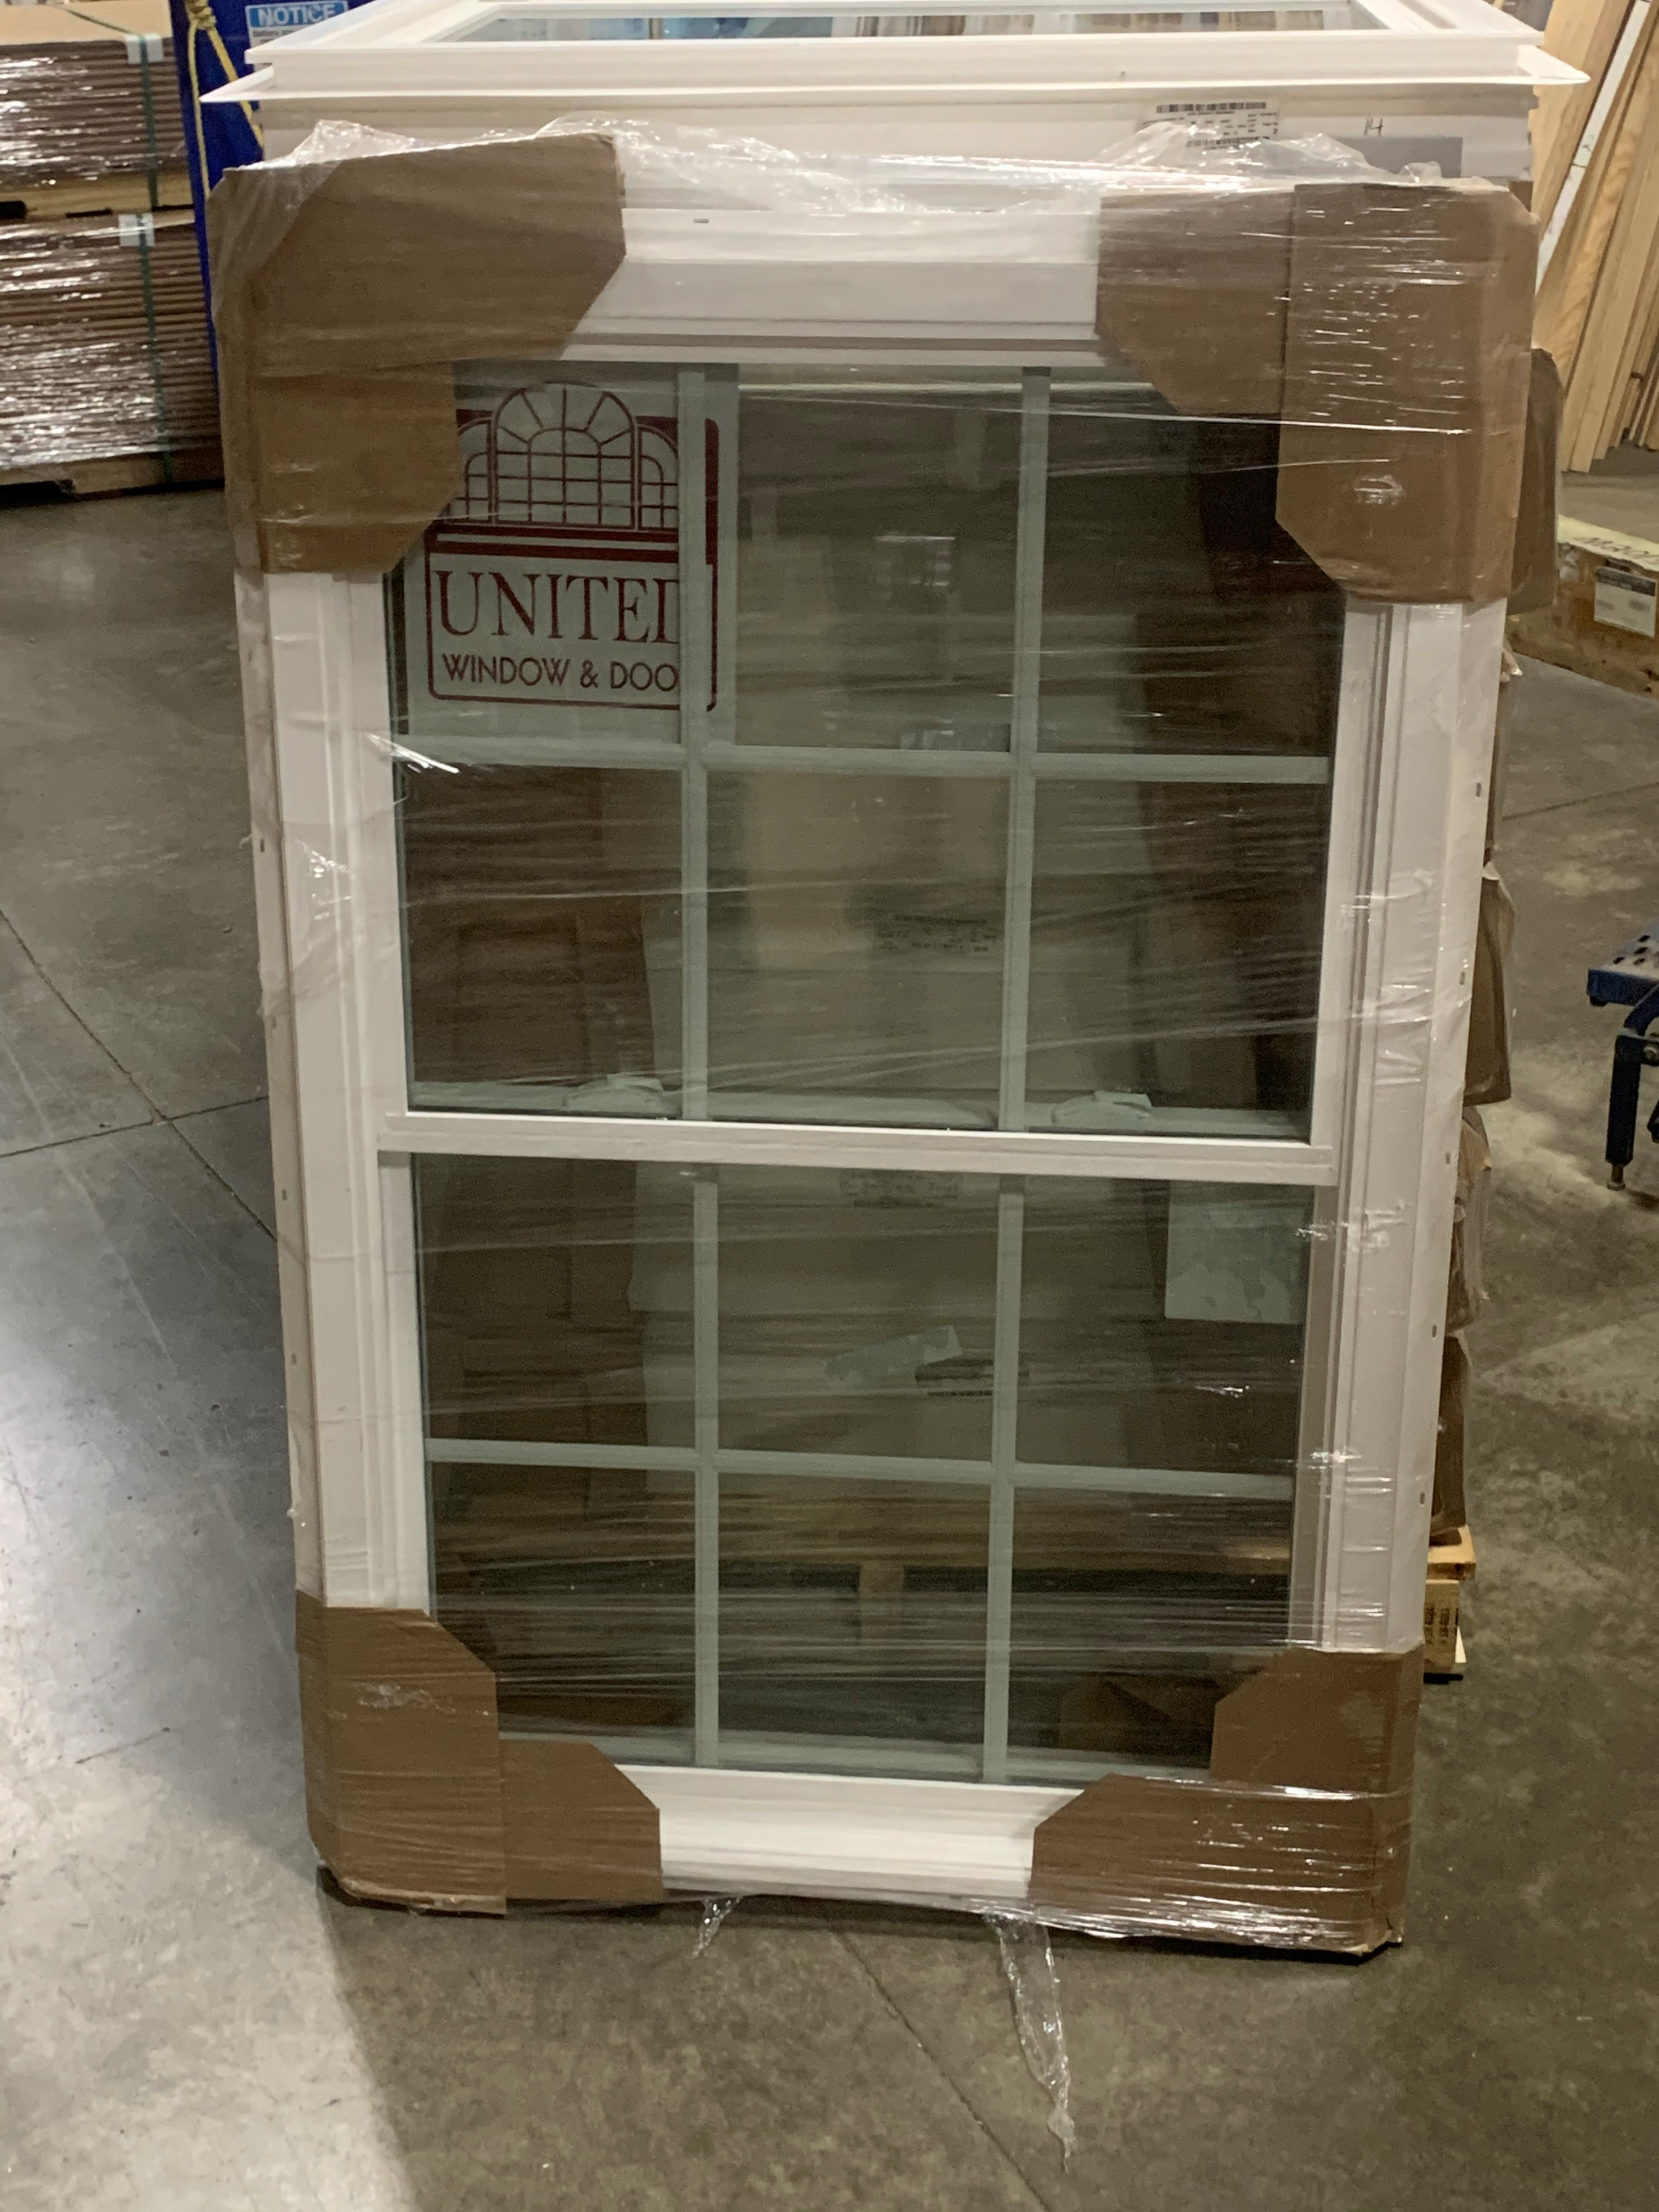 United  2-8 x 4-0, Tempered 6 over 6 window